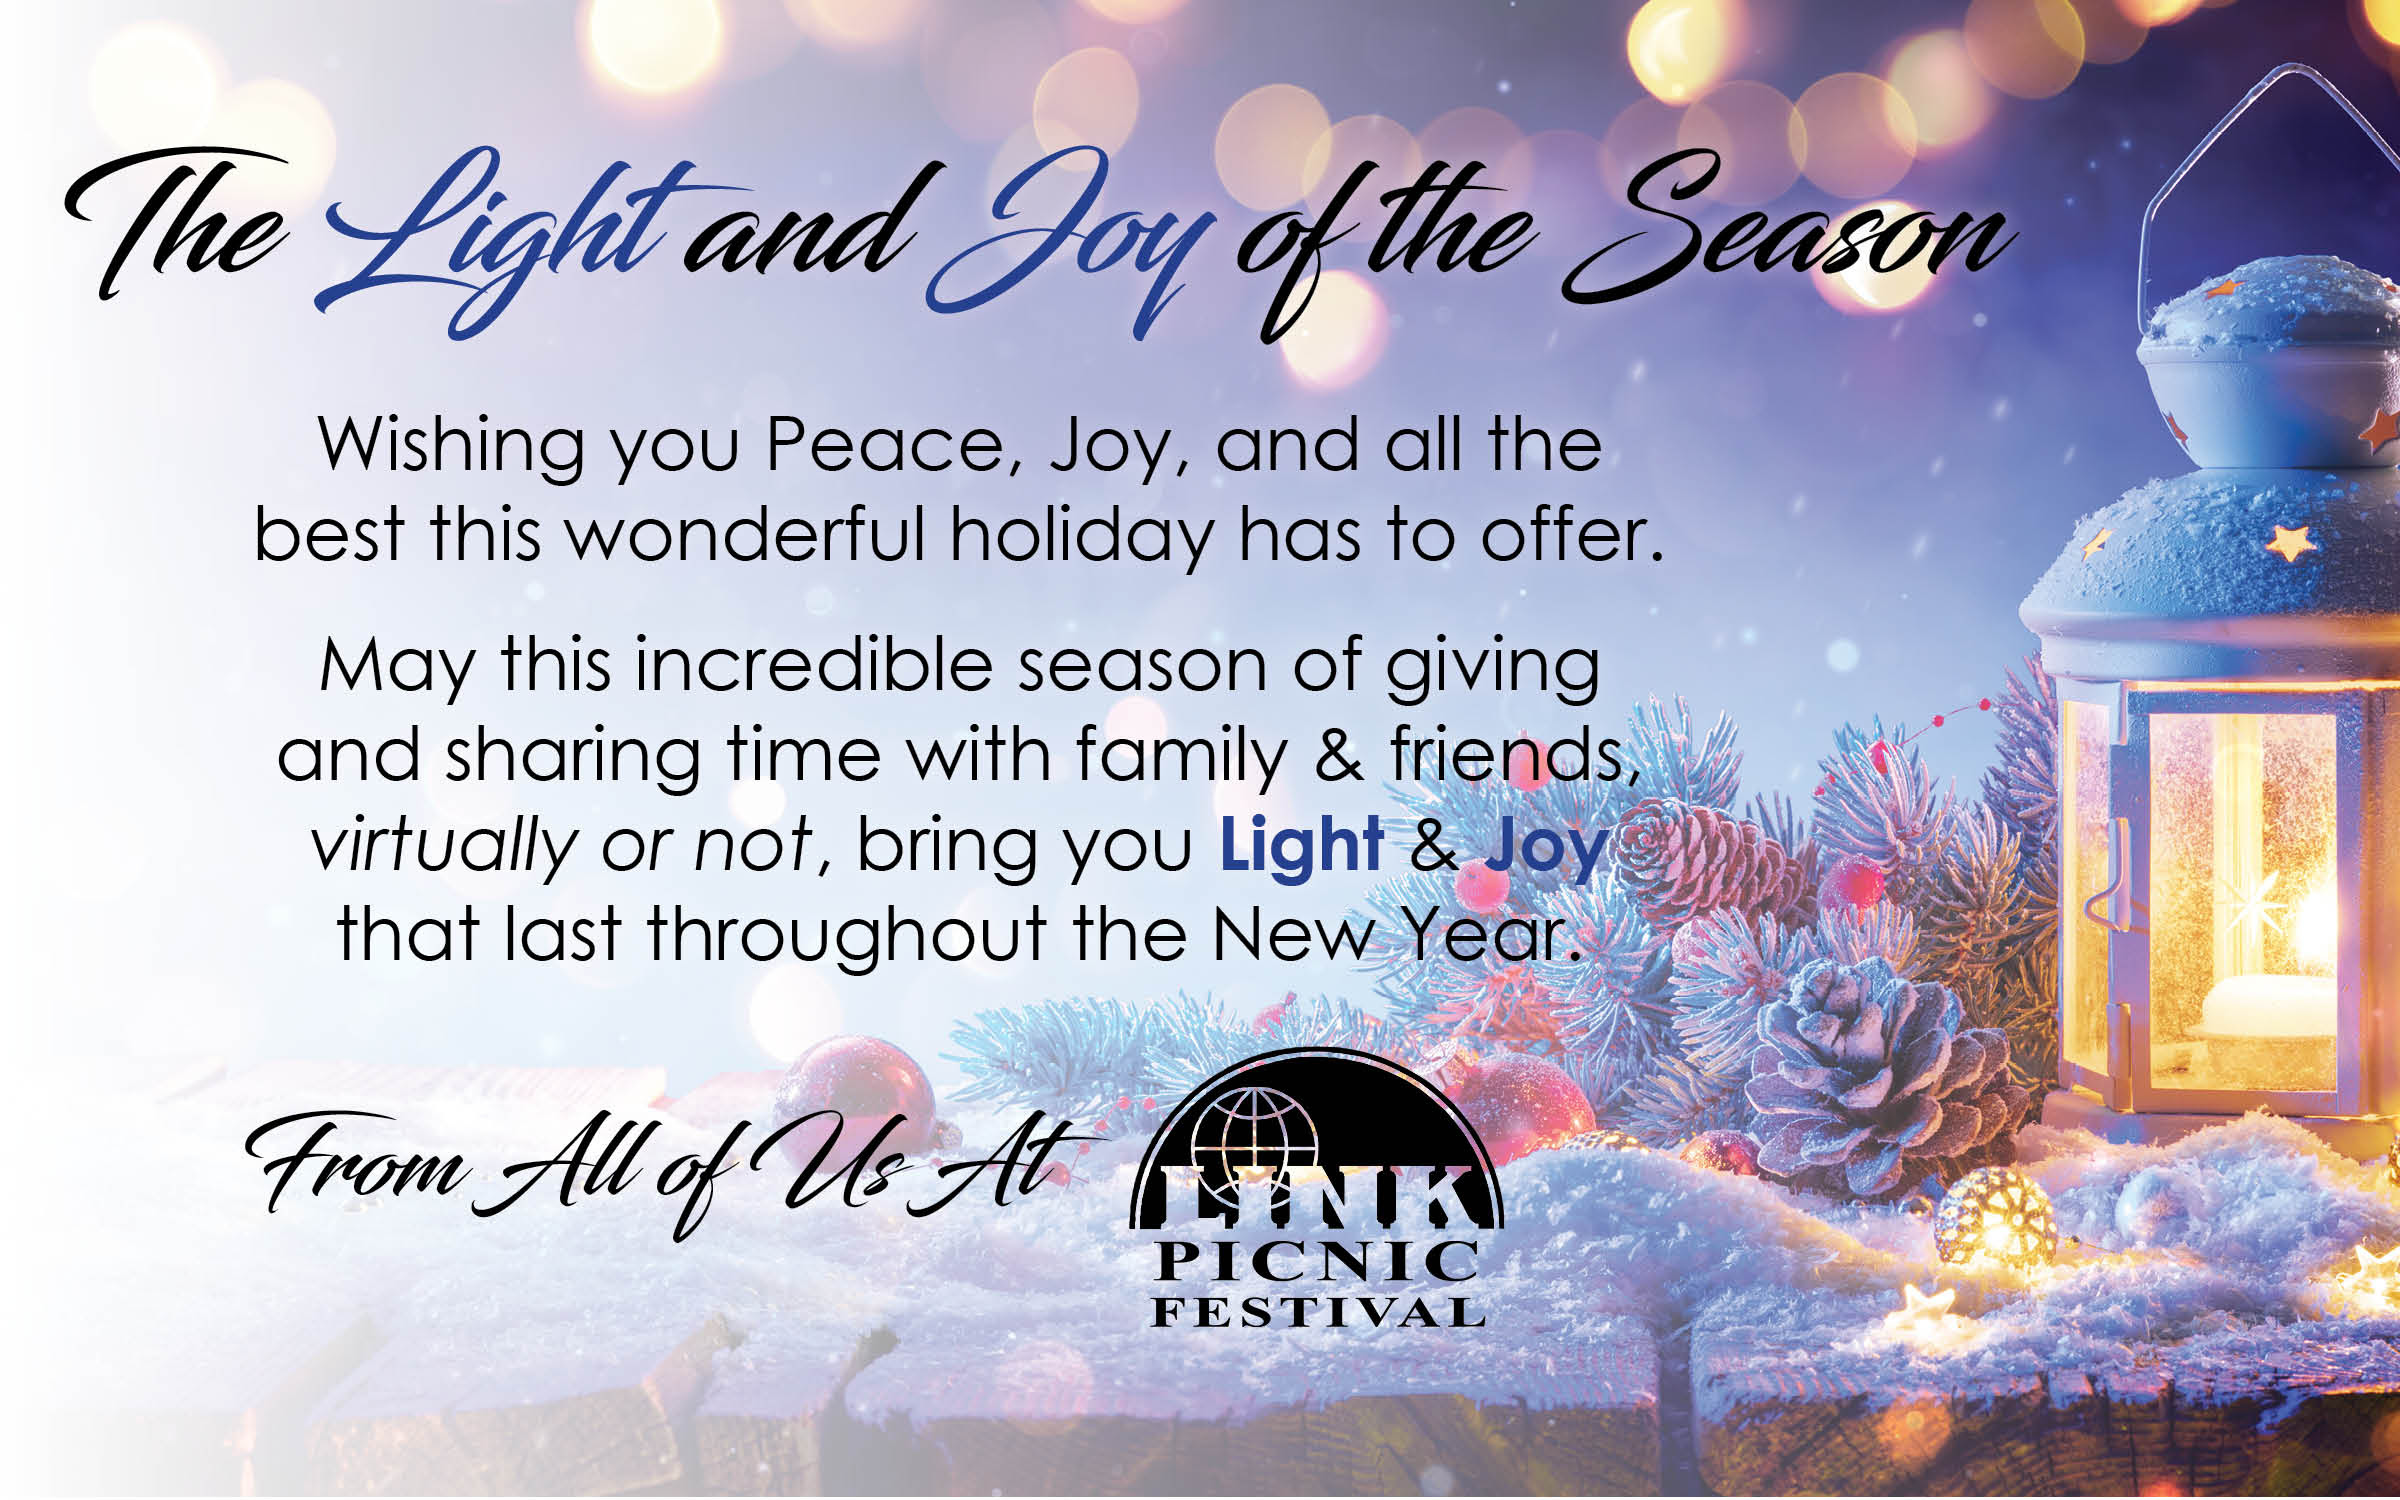 The Light and Joy of the Season Wishing you Peace, Joy, and all the best this wonderful holiday has to offer. May this incredible season of giving and sharing time sith family & friends, virtually or not, bring you Light & Joy that last throughout the year. From All of Us At LINK Picnic Festival